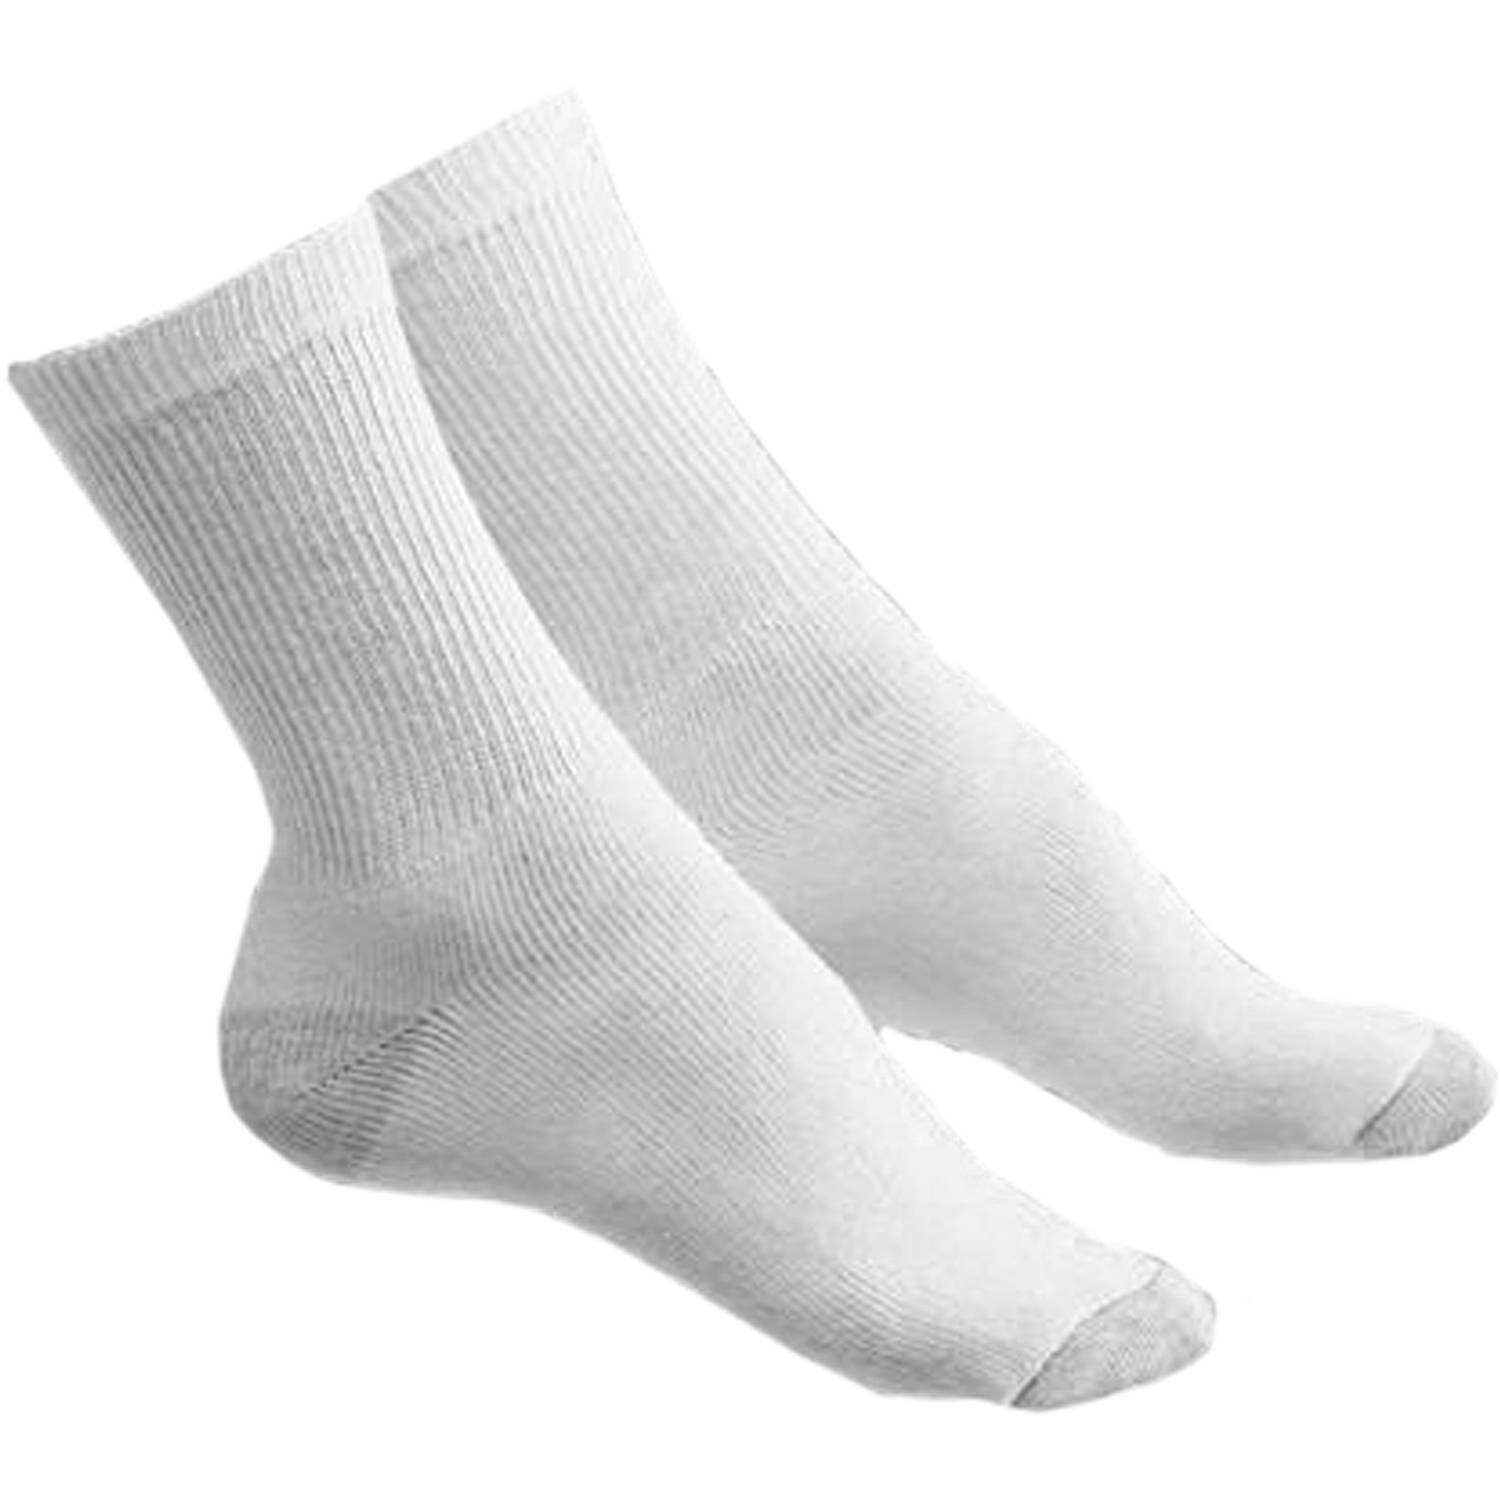 Women's Athletic Crew Socks, 6 Pairs